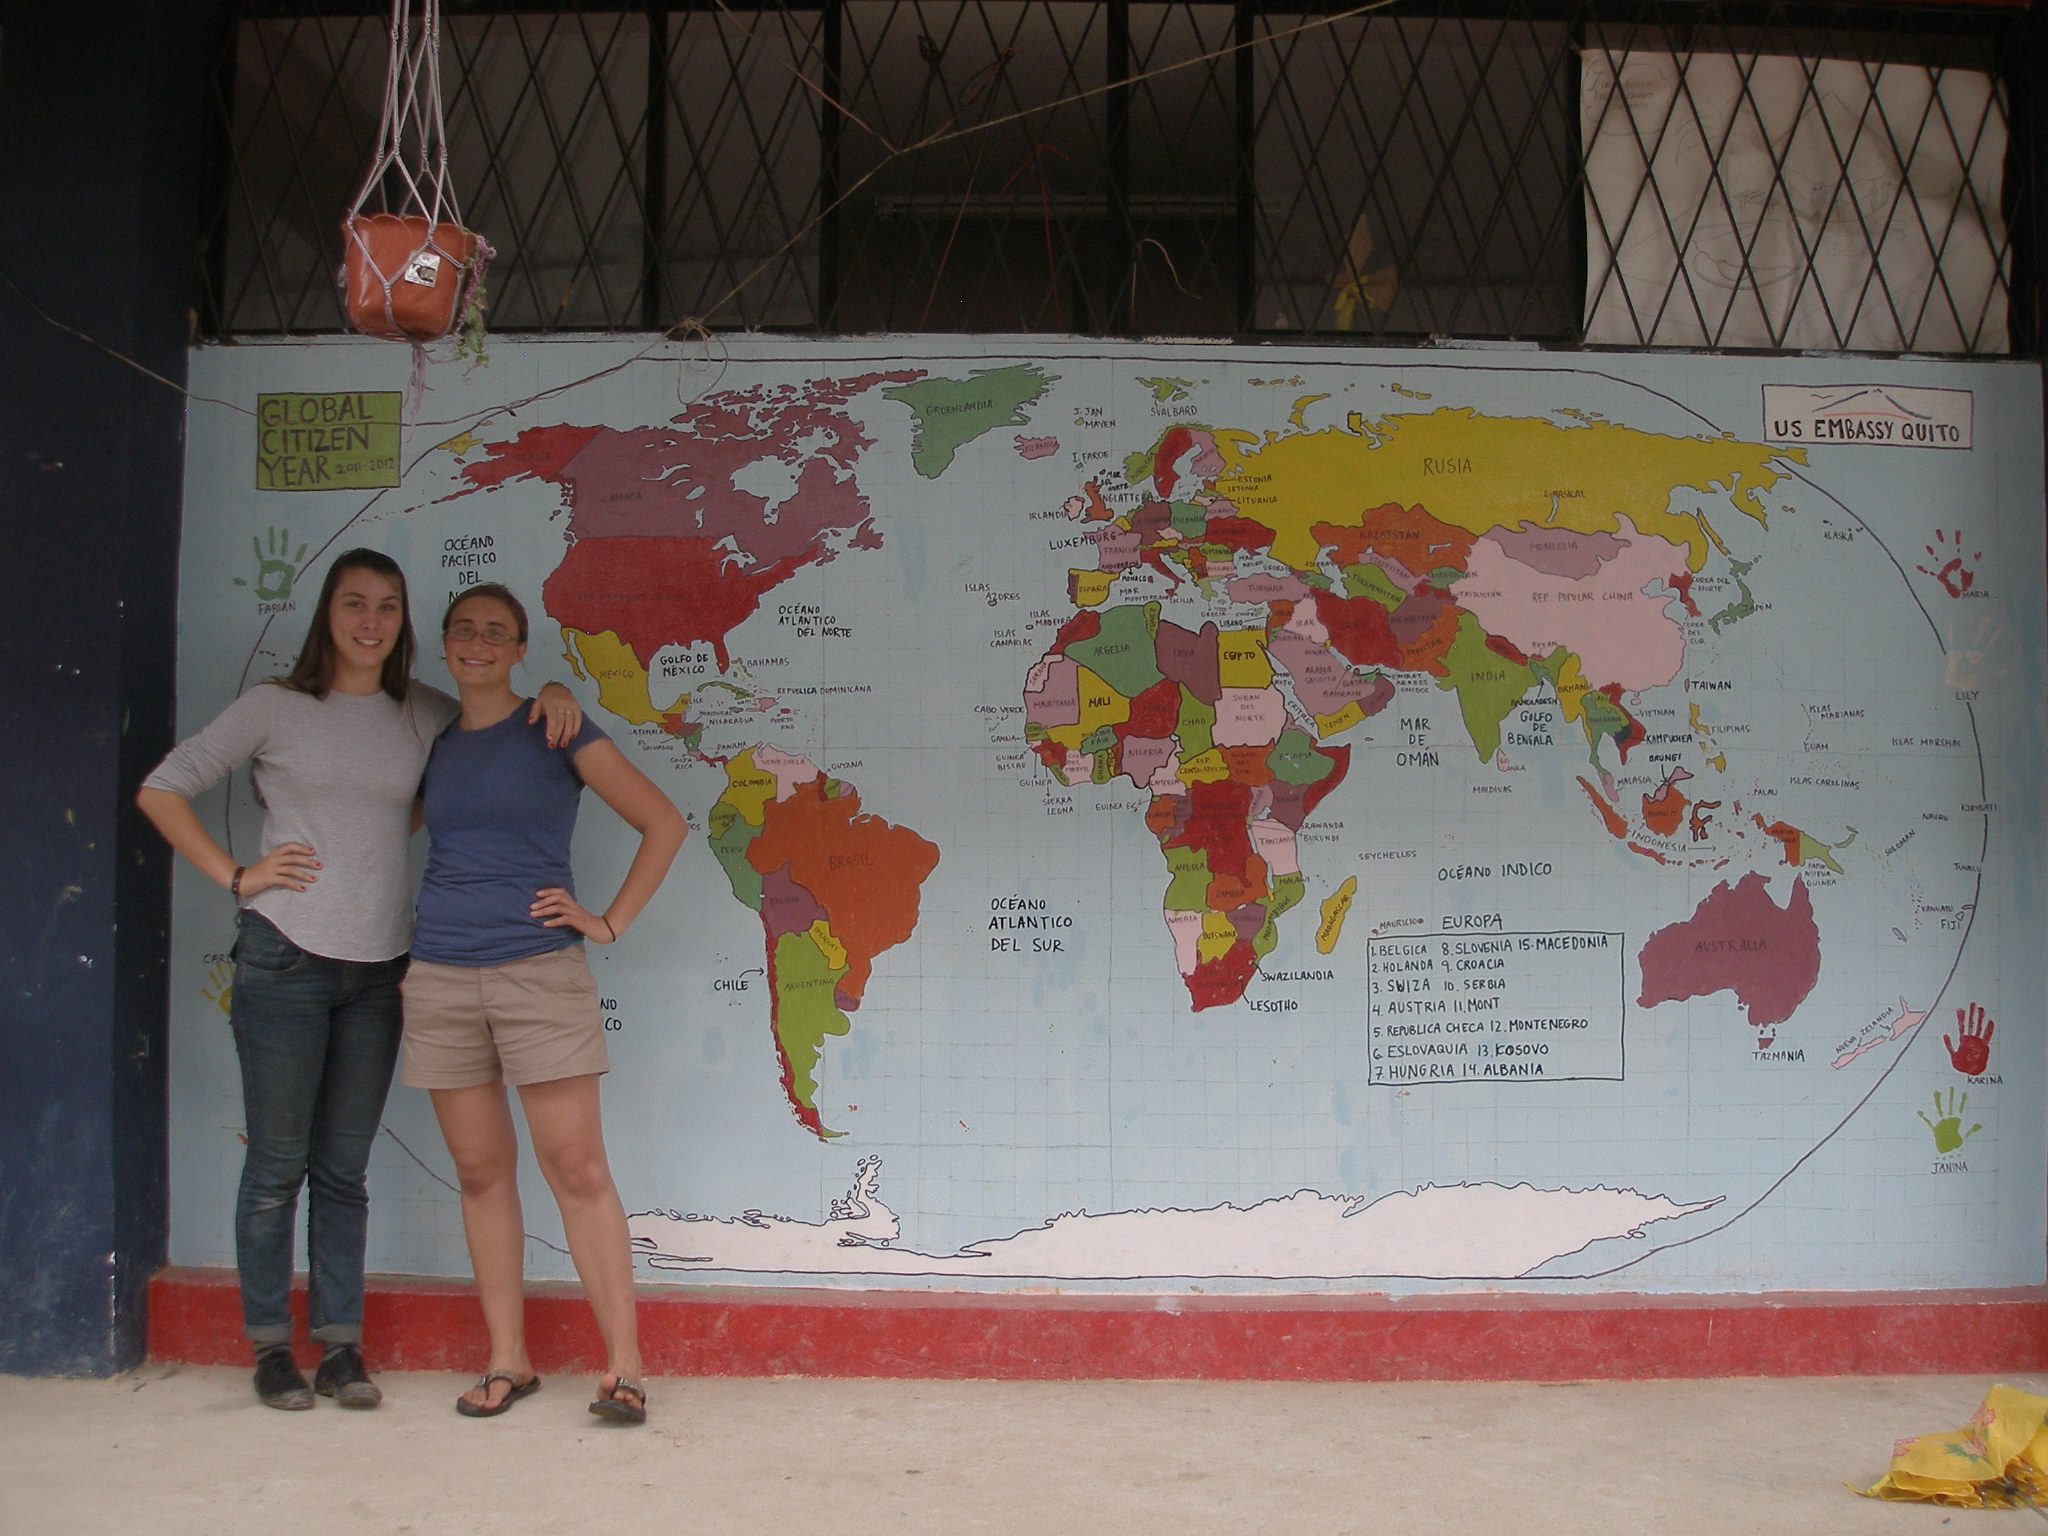 Painting the World: The World Map Project